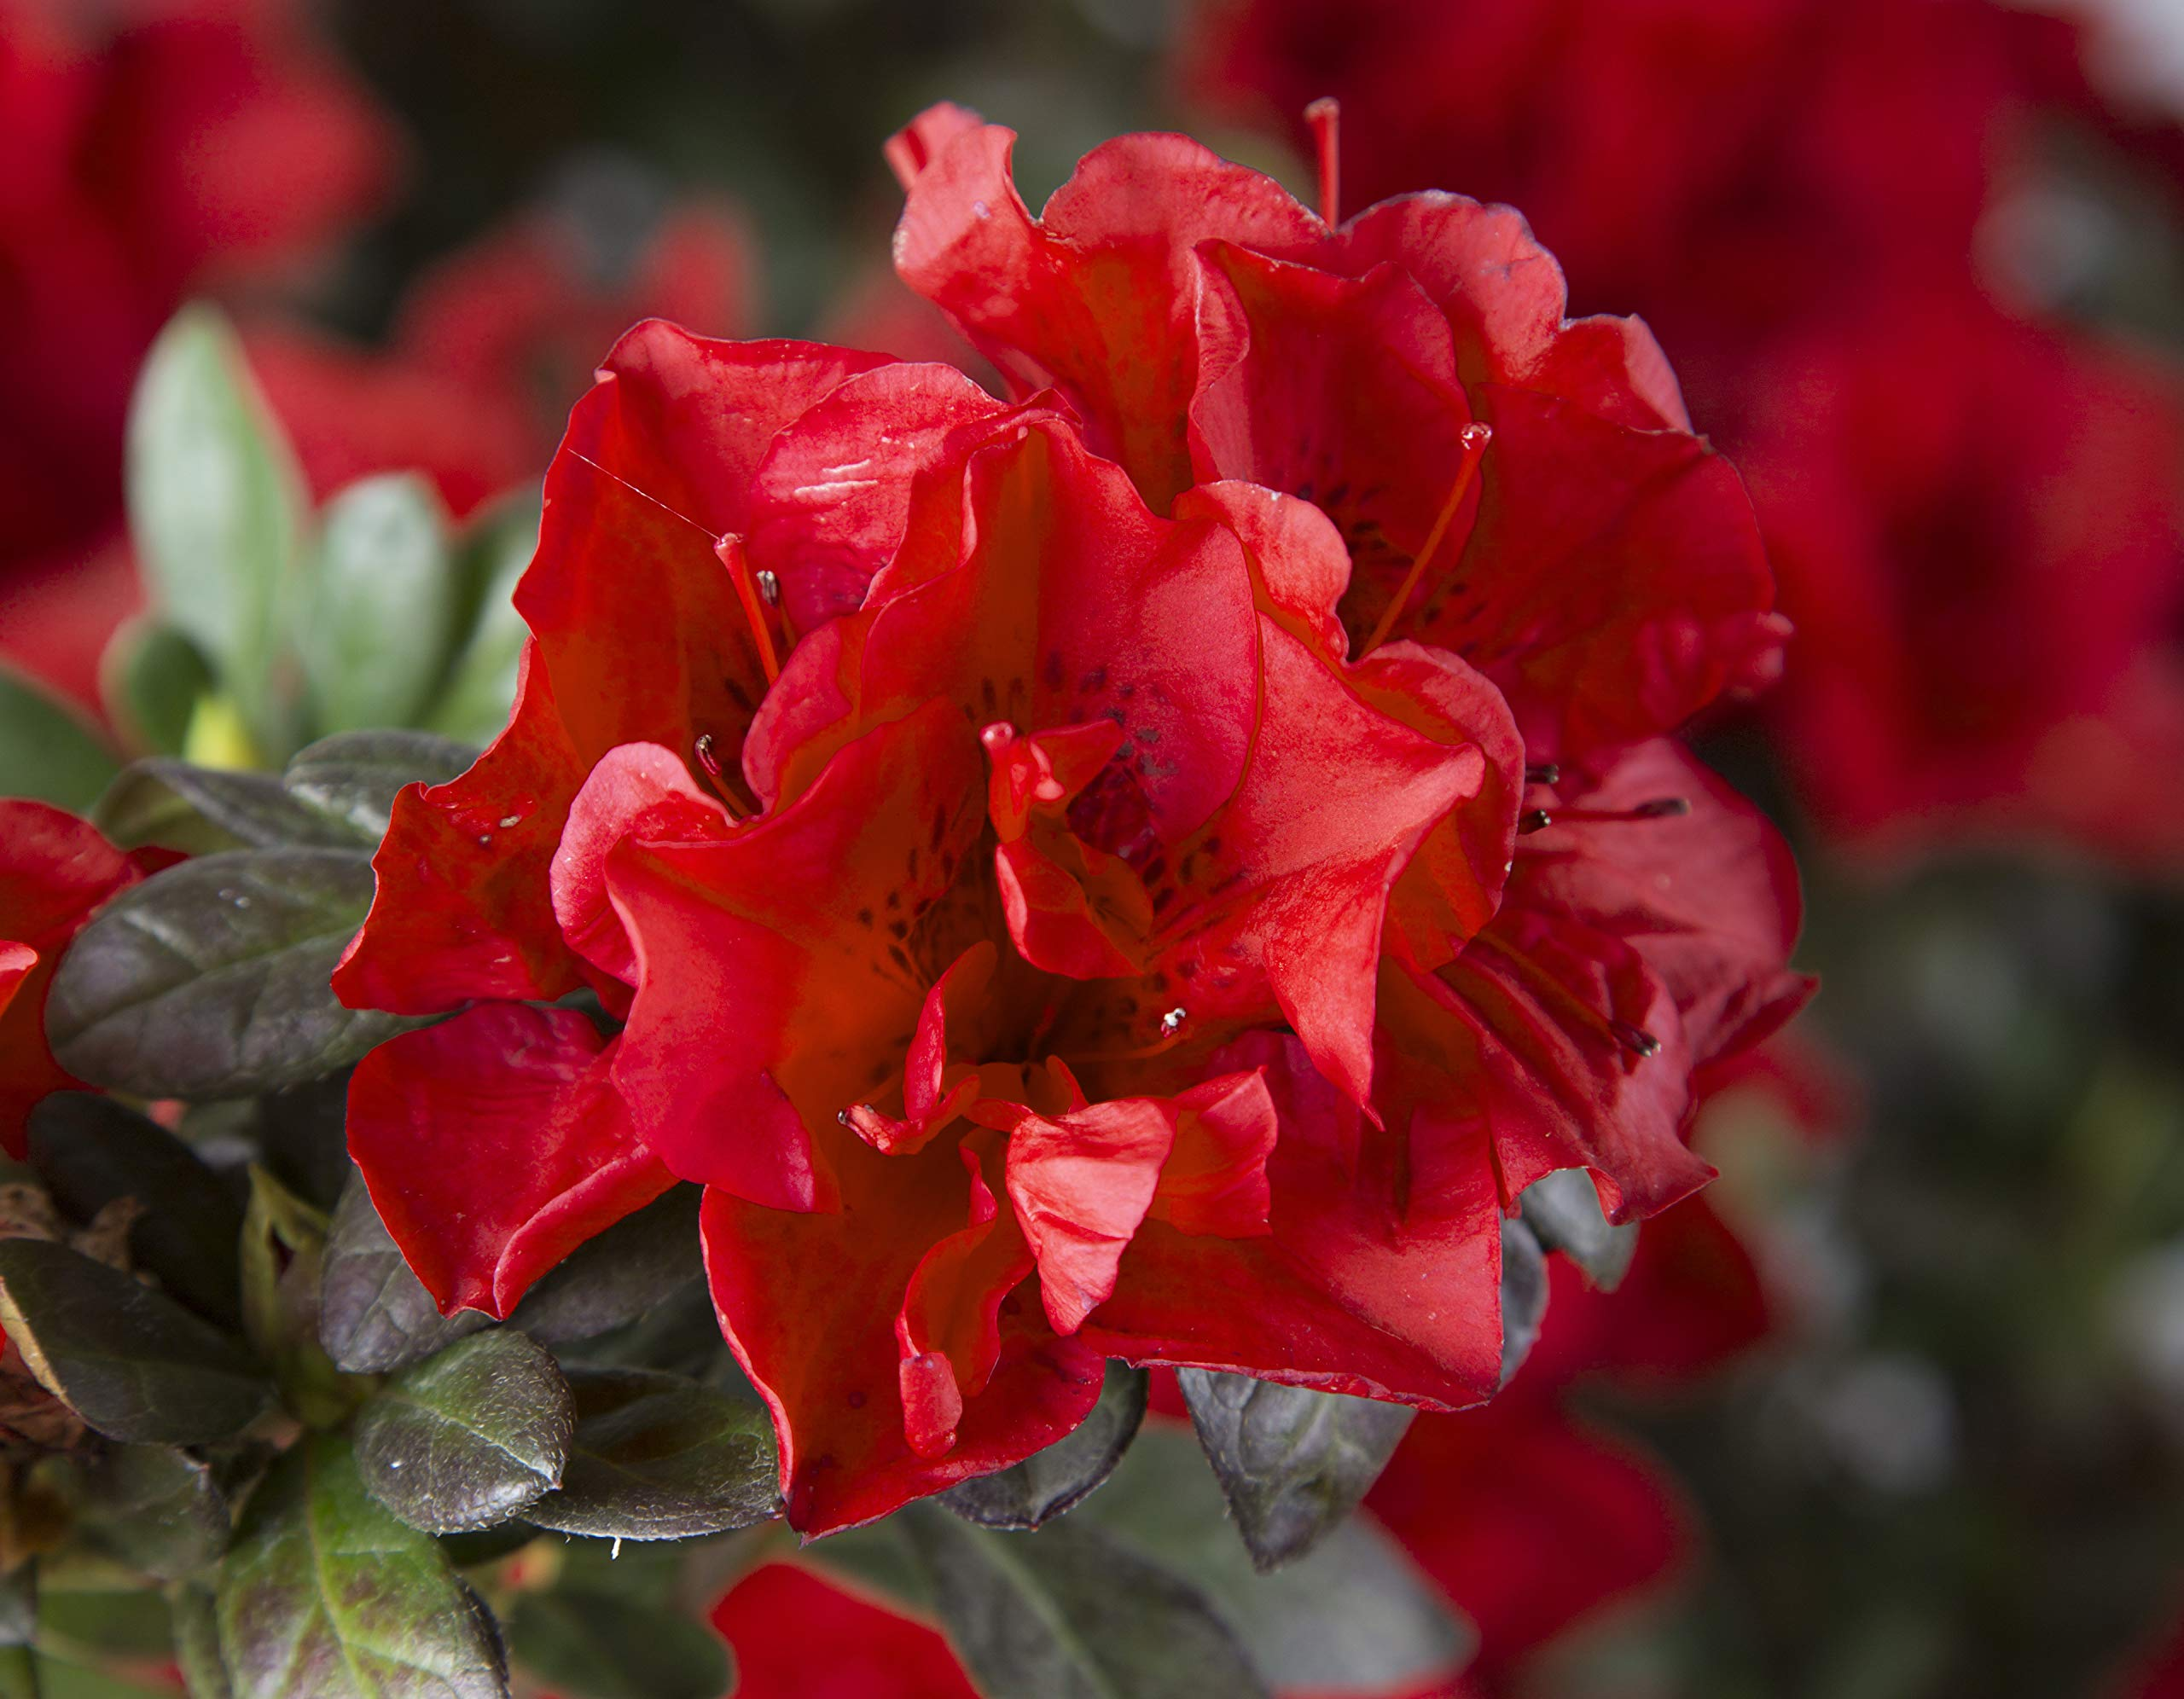 2 Gallon - Encore Azalea Autumn Fire - Vivid Red Blooms - Multi-season Re-blooming Evergreen Shrub